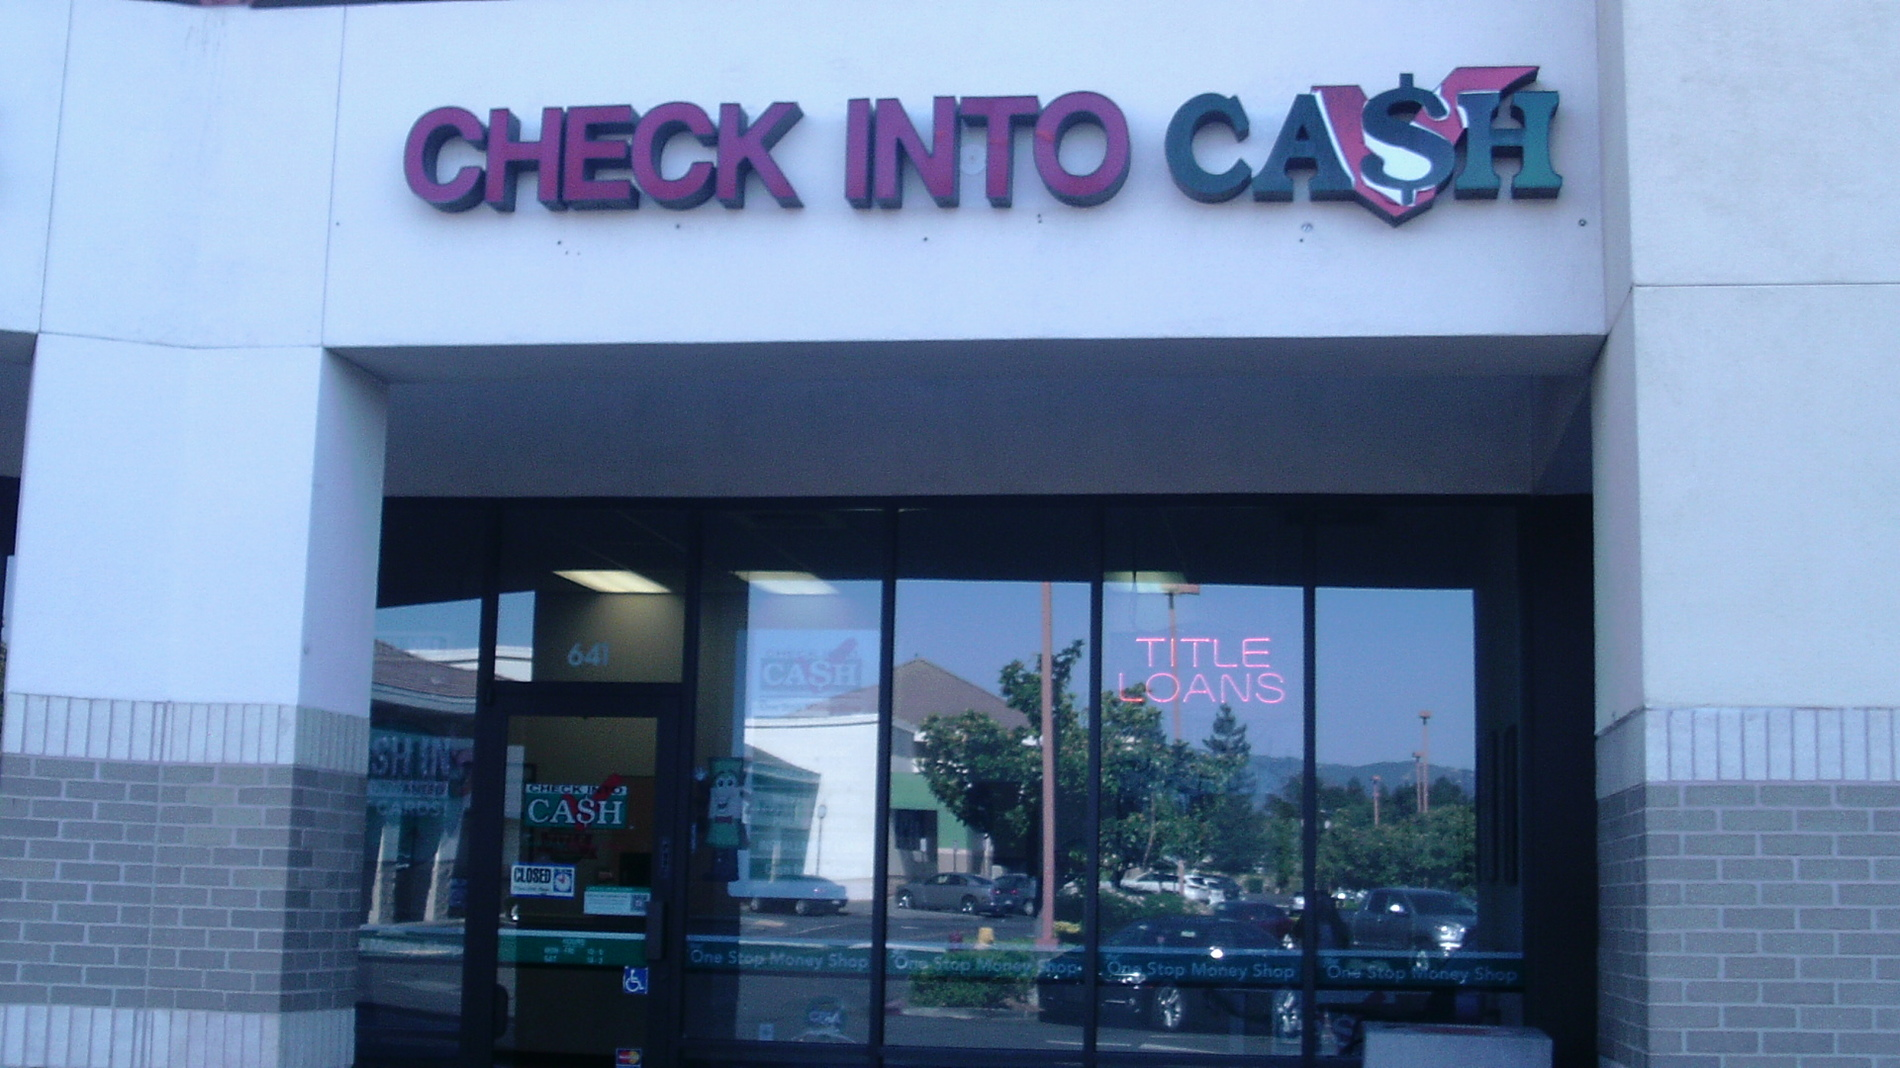 Cash advance fees in dts image 9